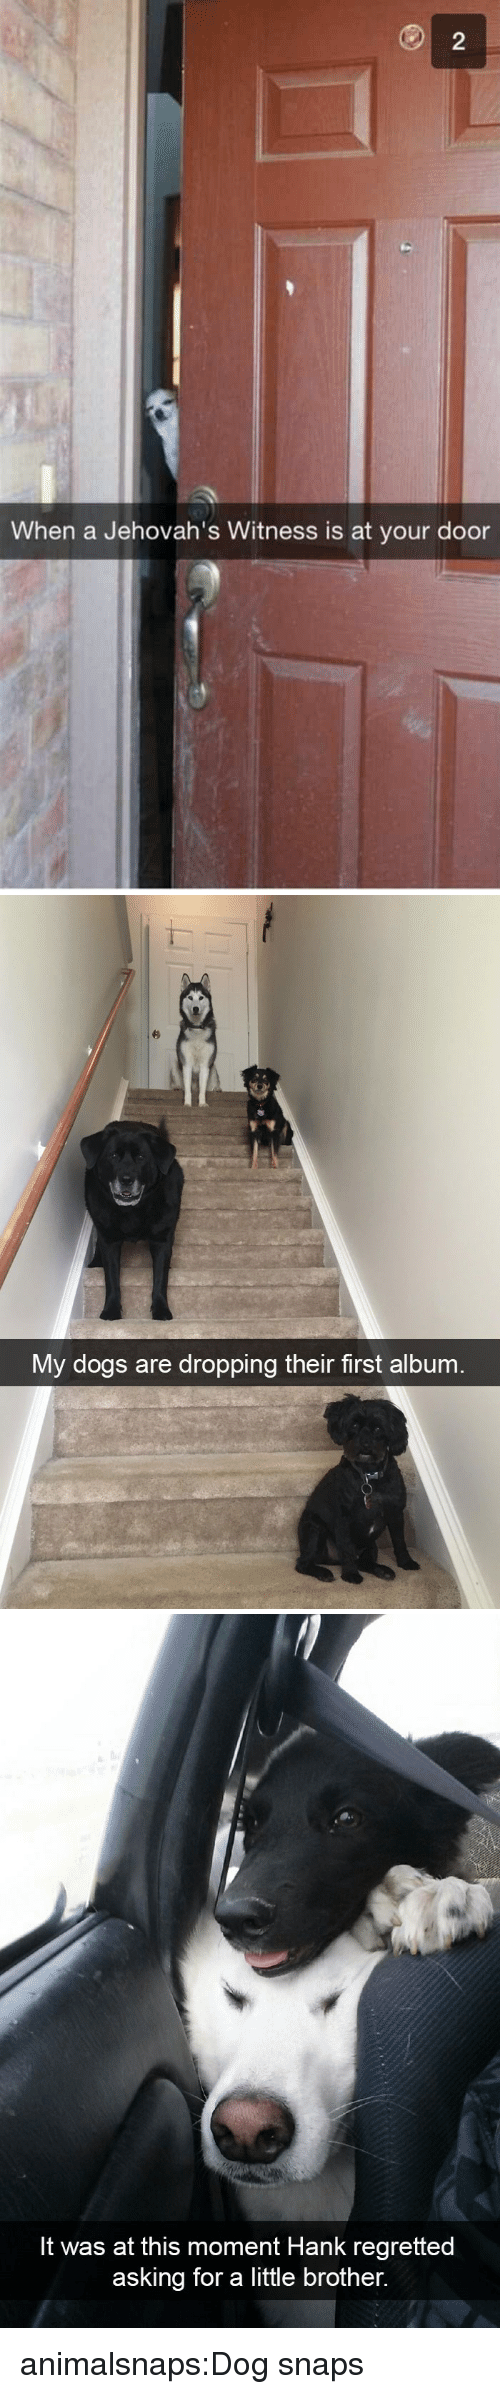 Dogs, Target, and Tumblr: When a Jehovah's Witness is at your door   My dogs are dropping their first album   It was at this moment Hank regretted  asking for a little brother. animalsnaps:Dog snaps